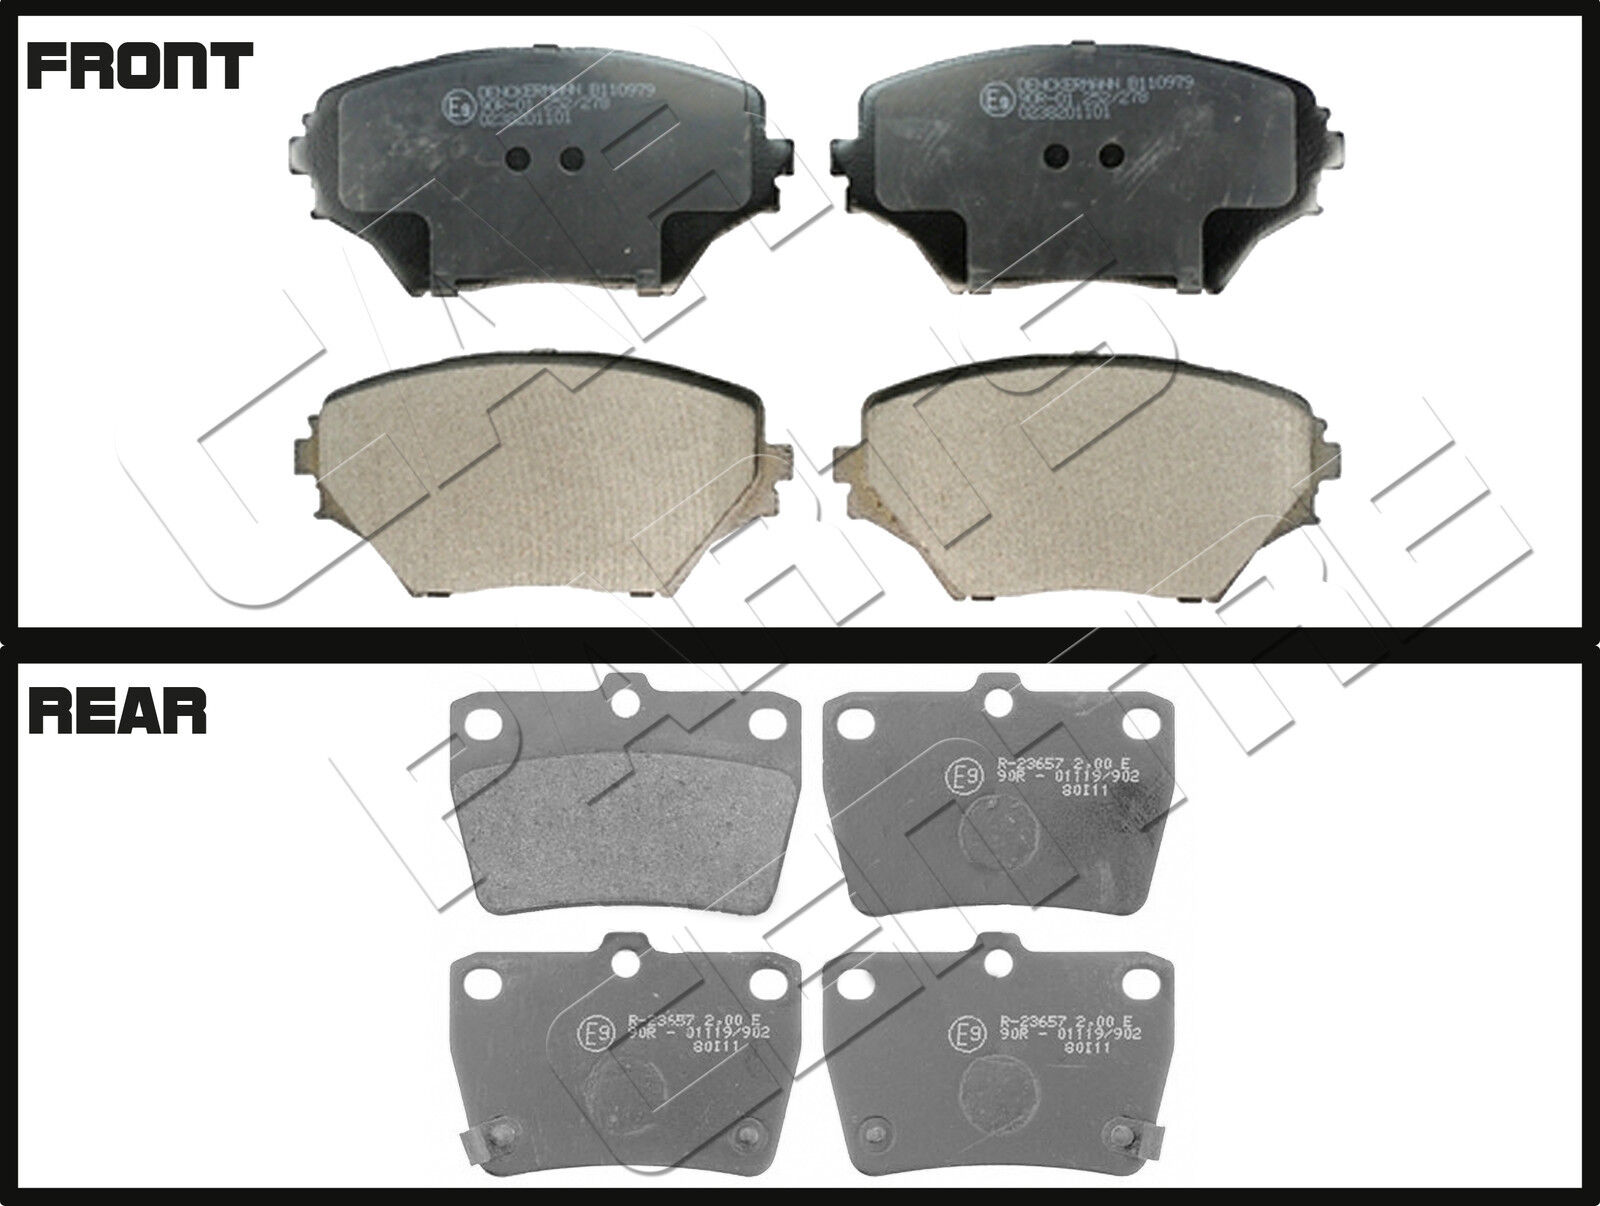 FOR TOYOTA RAV4 VVTI D4D 2001-2006 MINTEX FRONT REAR BRAKE PADS SET BRAND NEW